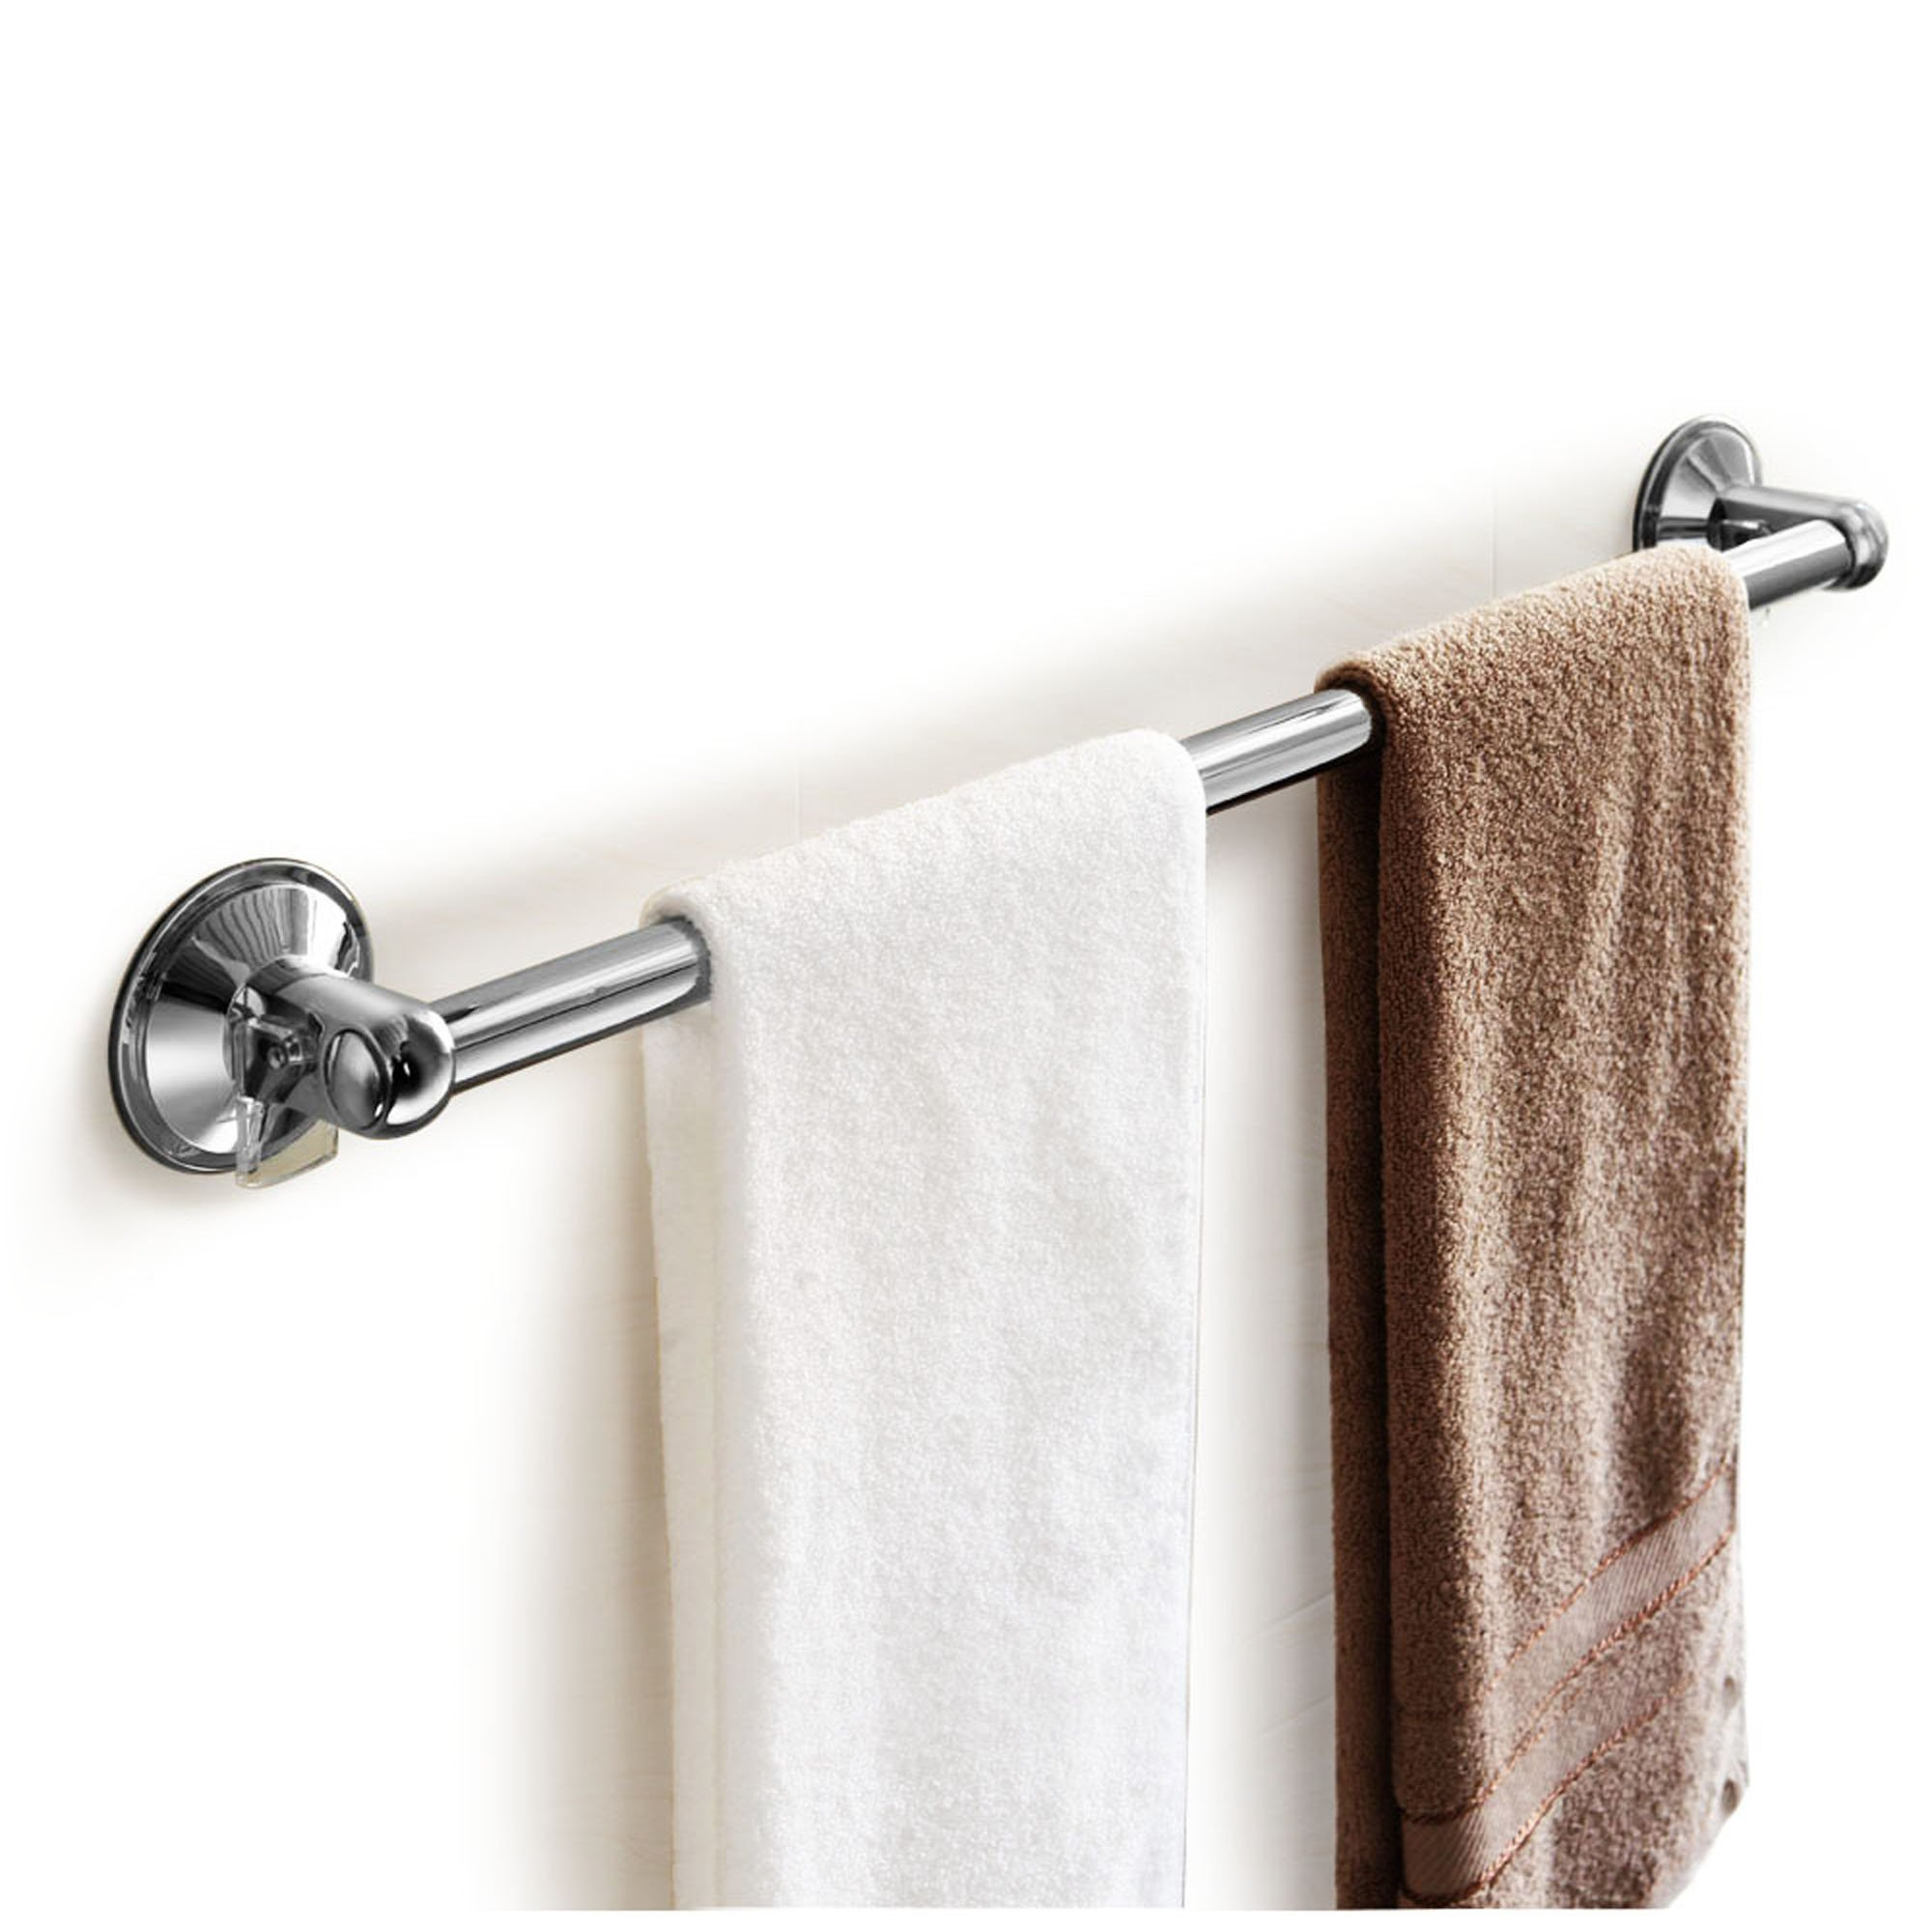 HotelSpa AquaCare series Insta-mount 24'' towel Bar by HotelSpa